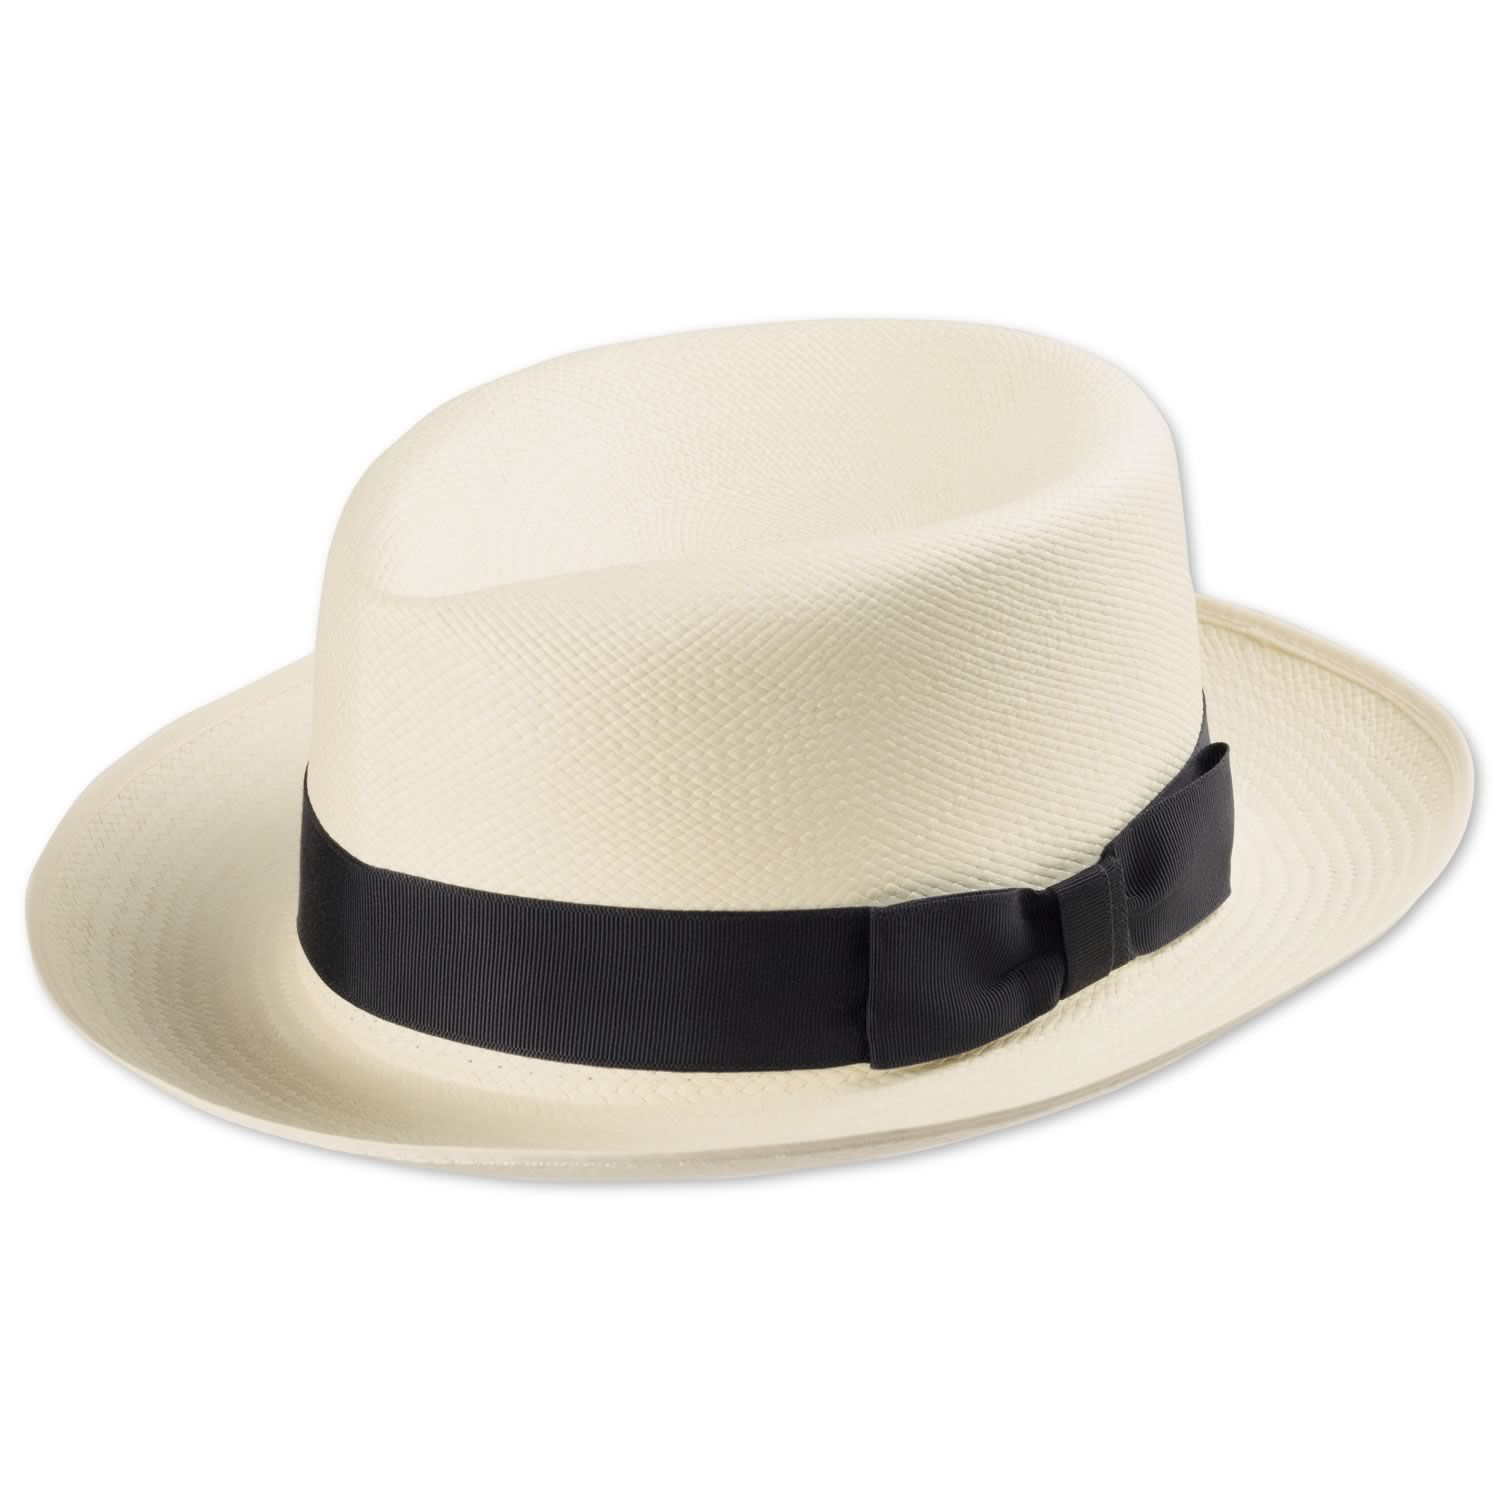 8b113132b9ab Panama hat ✭ Men s hats from Charles Tyrwhitt, Jermyn Street, London